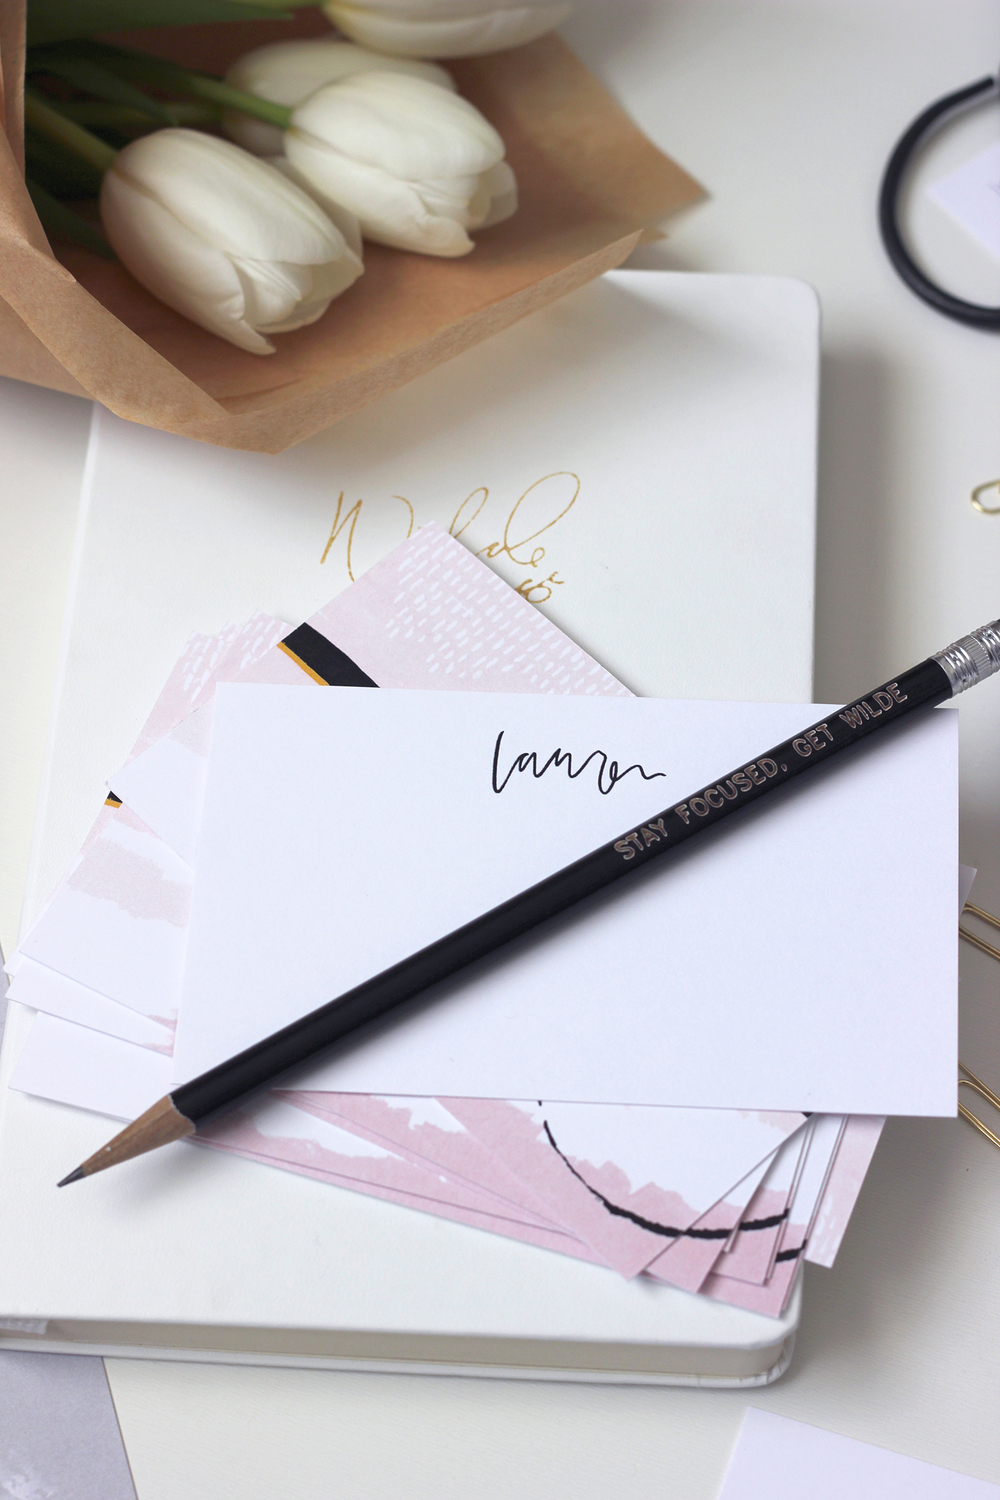 Custom stationery for your desk from our March Box | Wilde House Paper